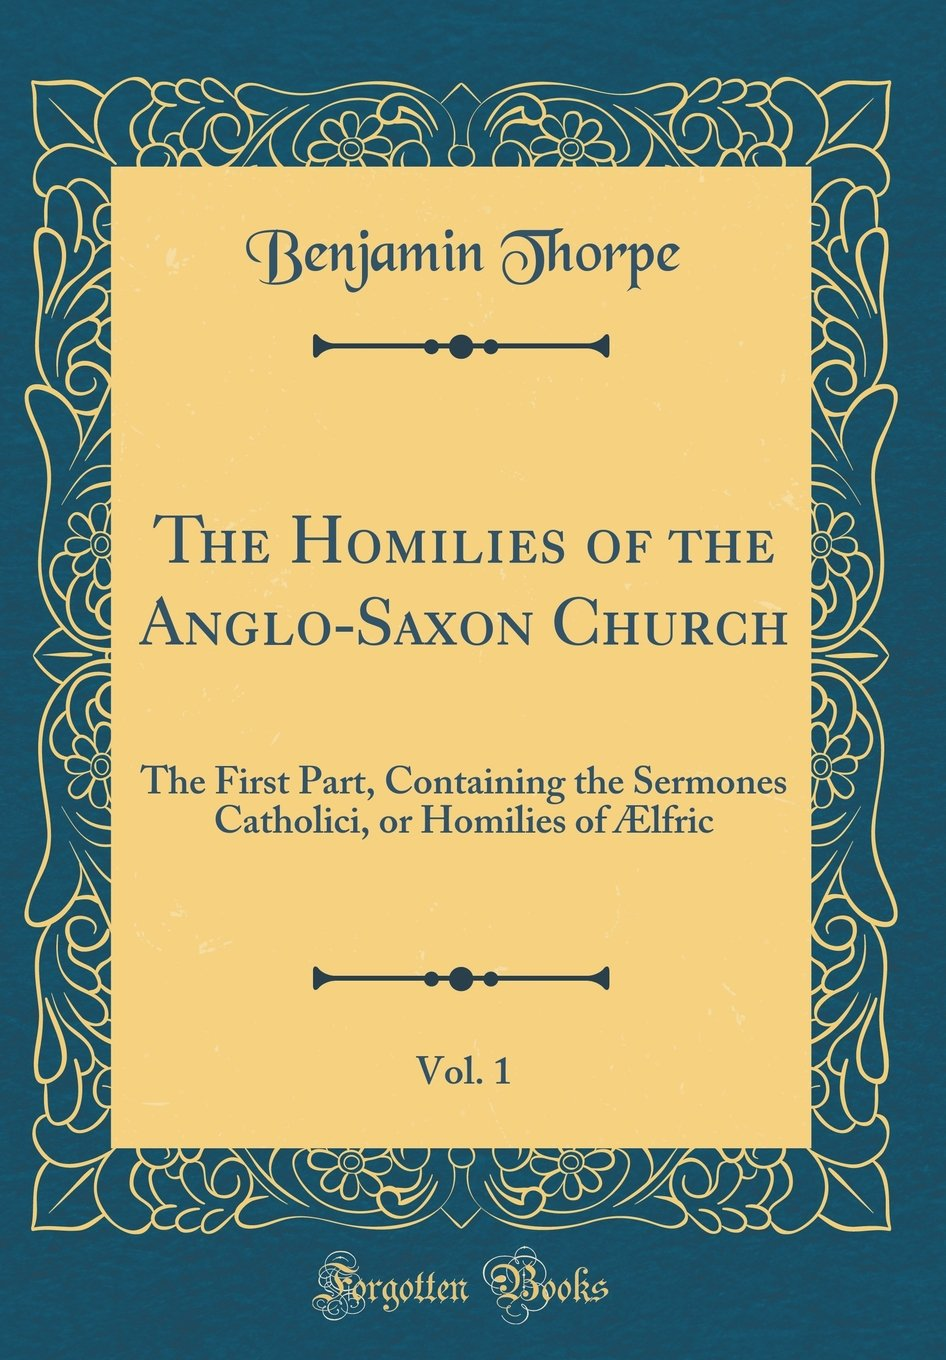 Download The Homilies of the Anglo-Saxon Church, Vol. 1: The First Part, Containing the Sermones Catholici, or Homilies of Ælfric (Classic Reprint) pdf